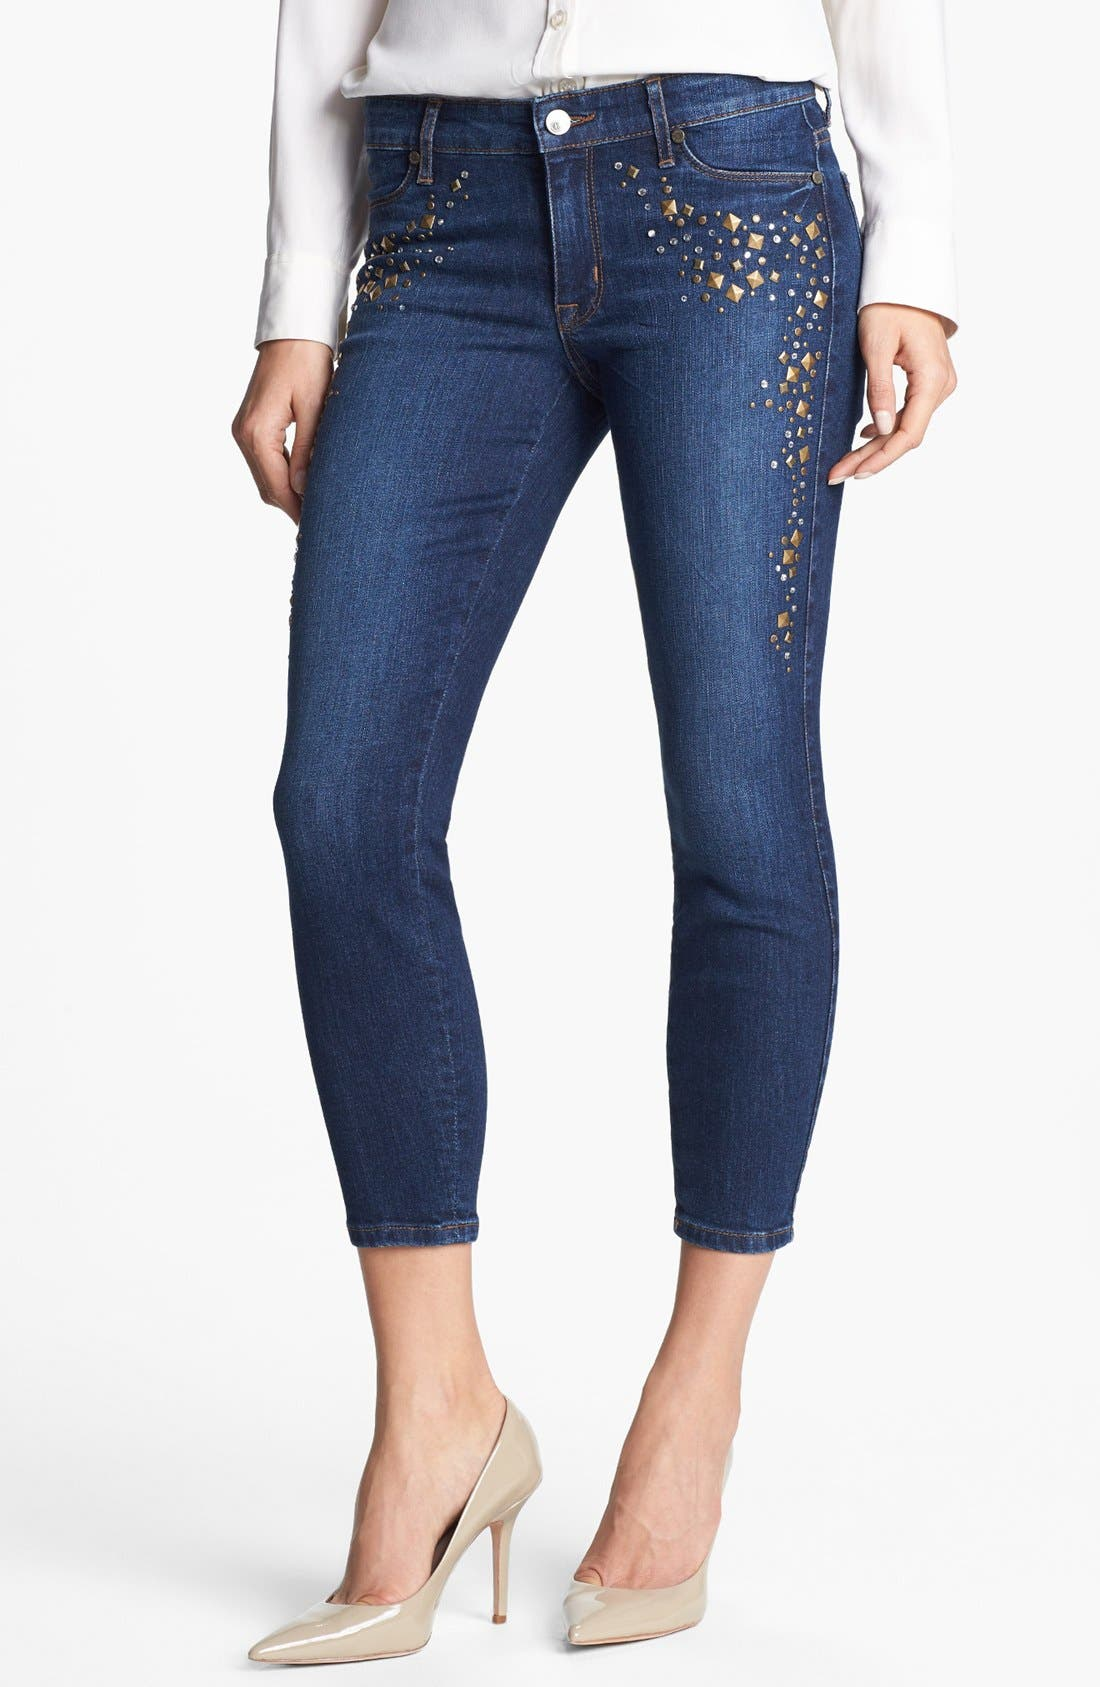 Alternate Image 1 Selected - CJ by Cookie Johnson 'Believe' Embellished Crop Stretch Jeans